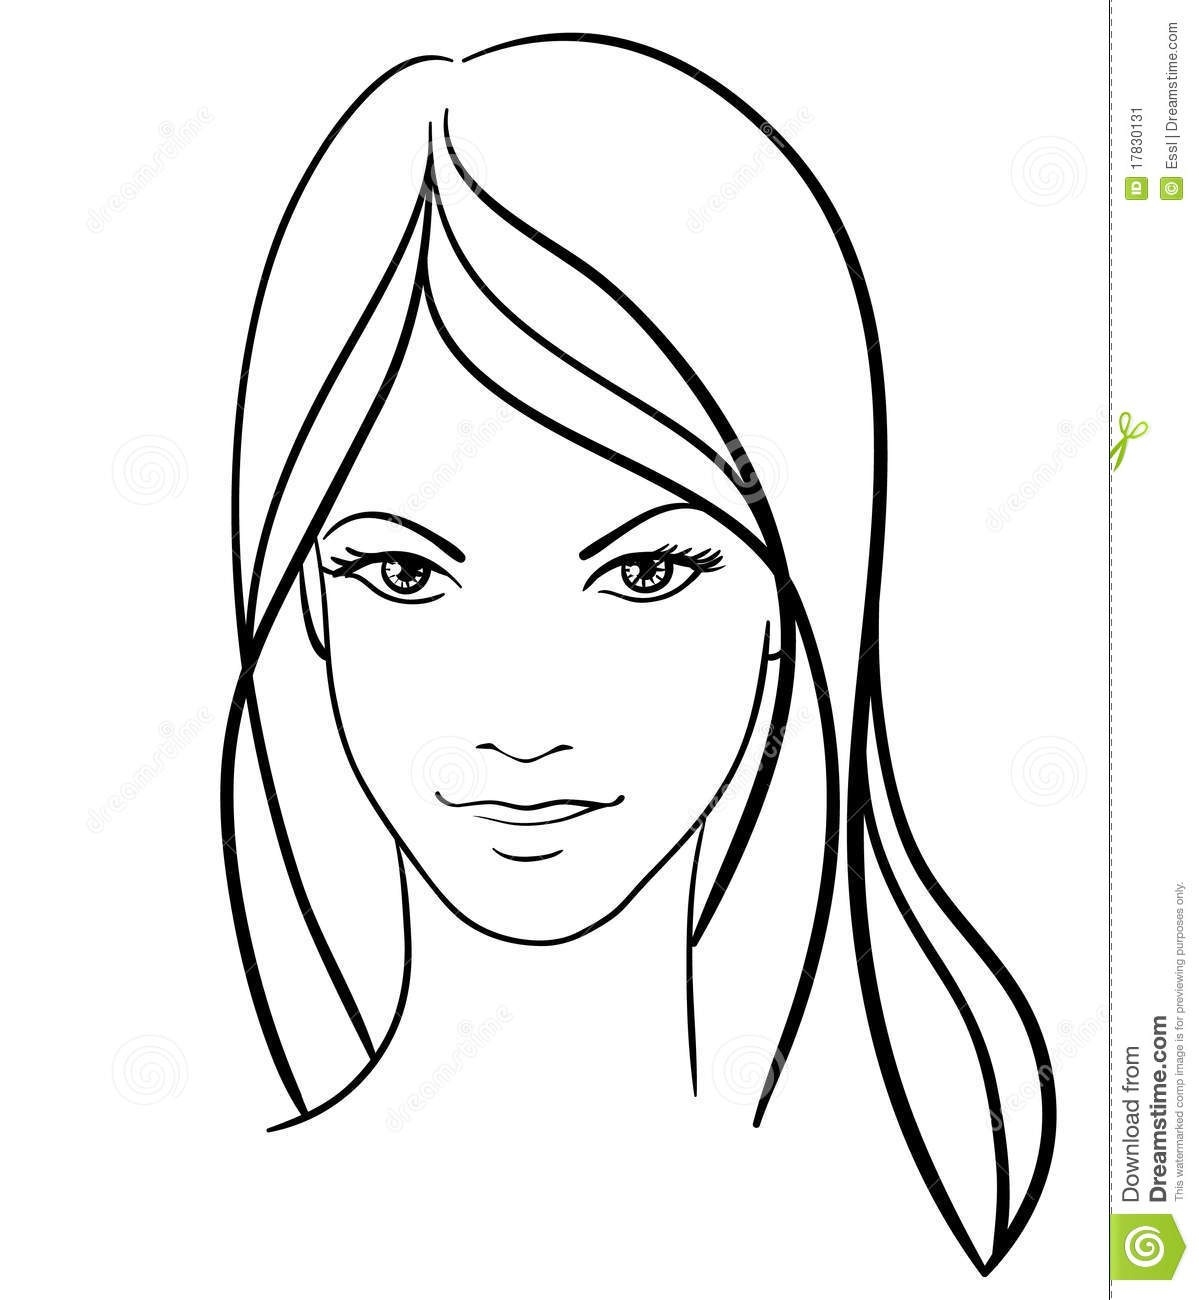 1199x1300 Simple Black And White Drawings Of Faces World Of Example